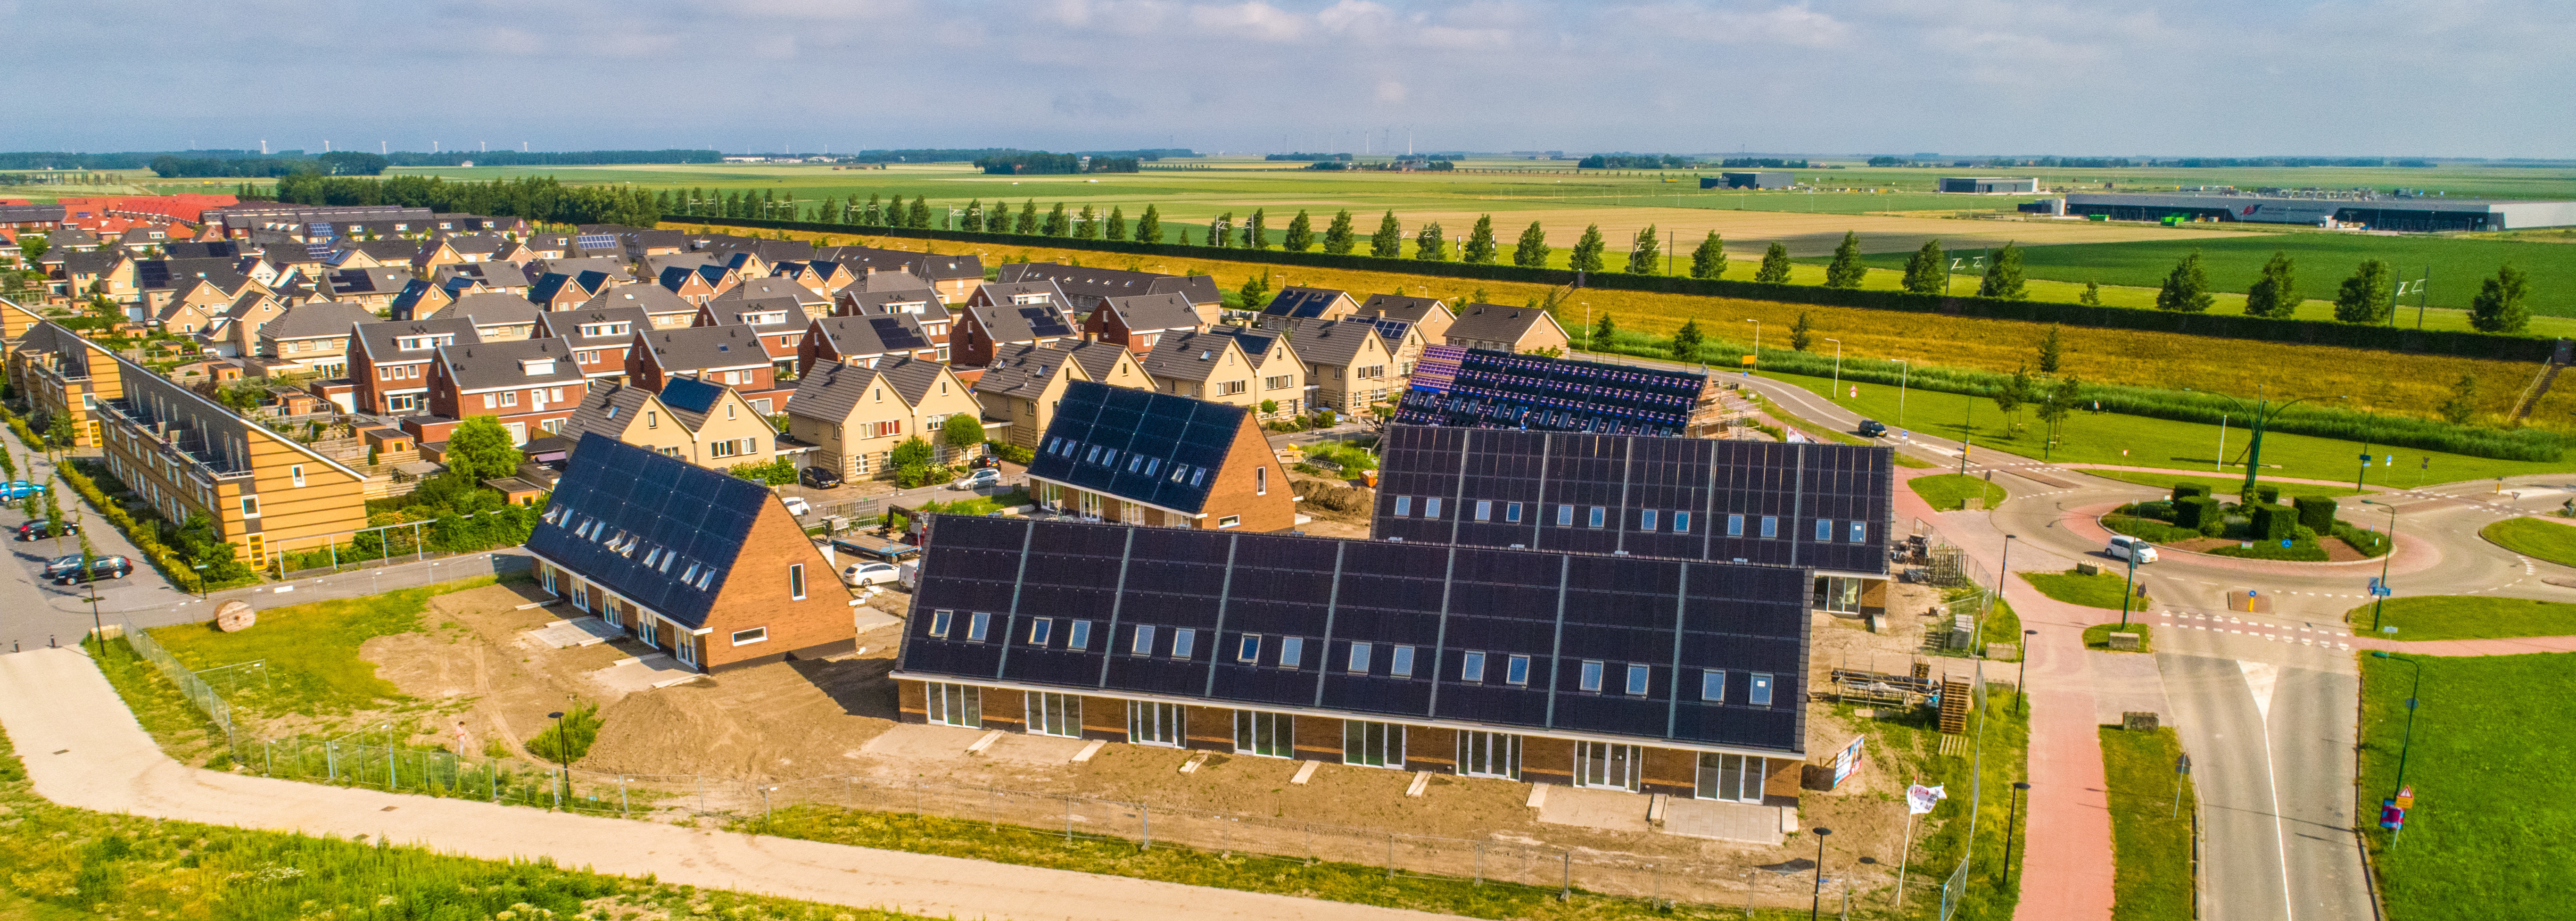 Project Gildenhof in Dronten